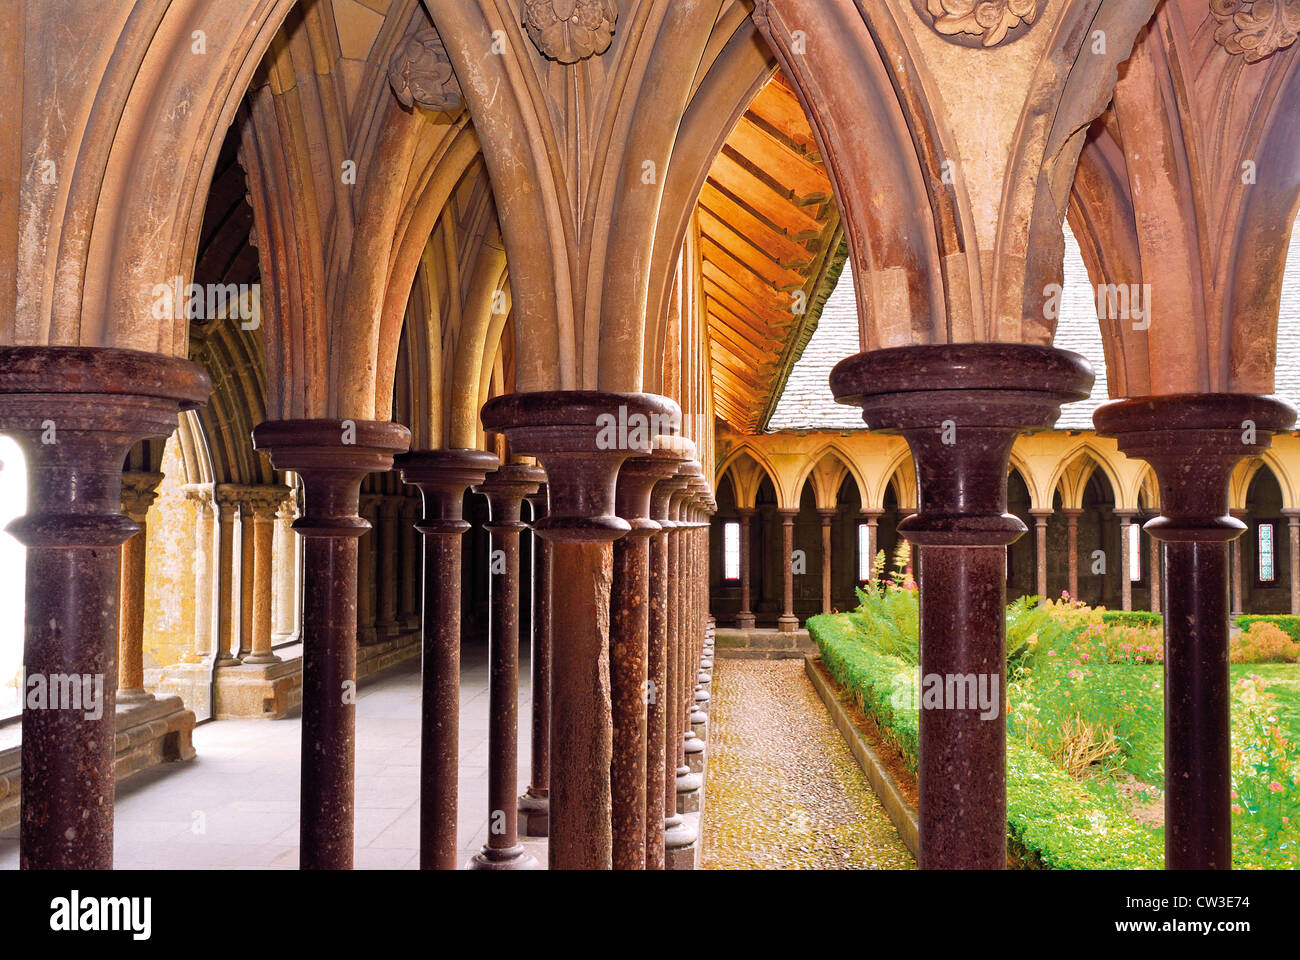 France, Normandy: Cloister of the Abbey St. Pierre at Mont St. Michel - Stock Image